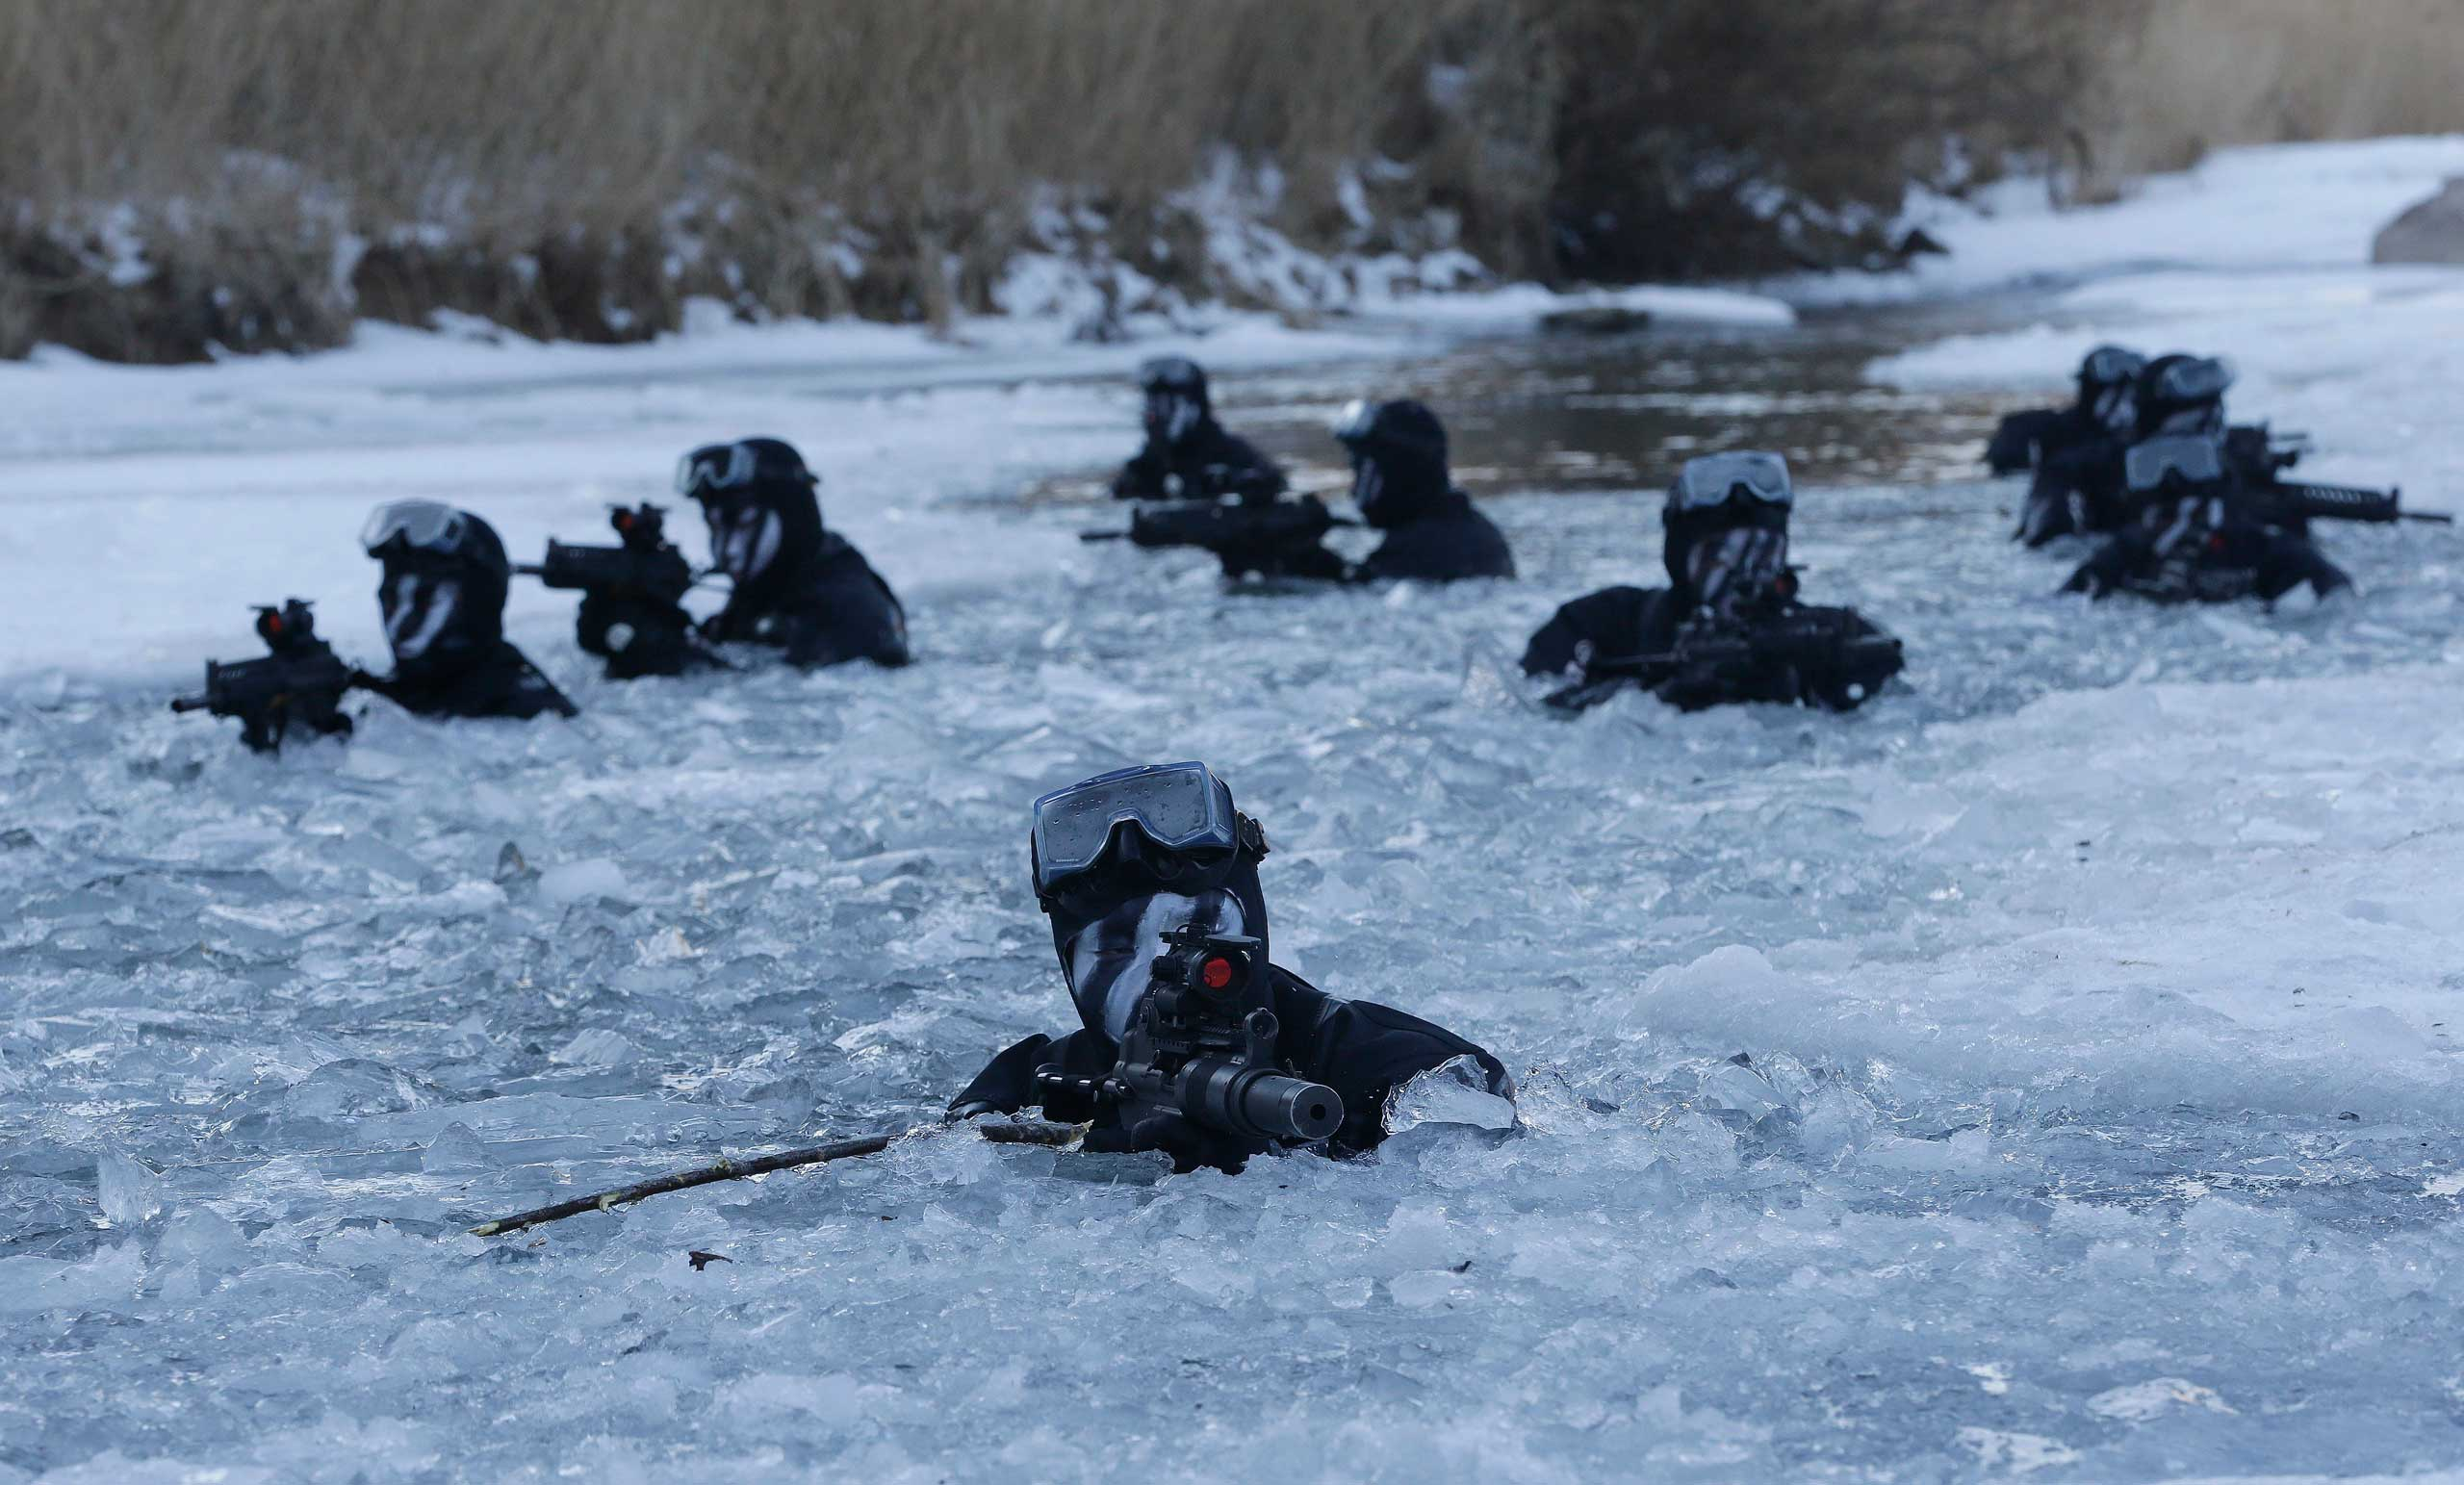 South Korea's Amry Special Warfare Command (SWC) soldiers aim their machine guns in a frozen river during a winter exercise in Pyeongchang, South Korea,  Jan. 8, 2015.